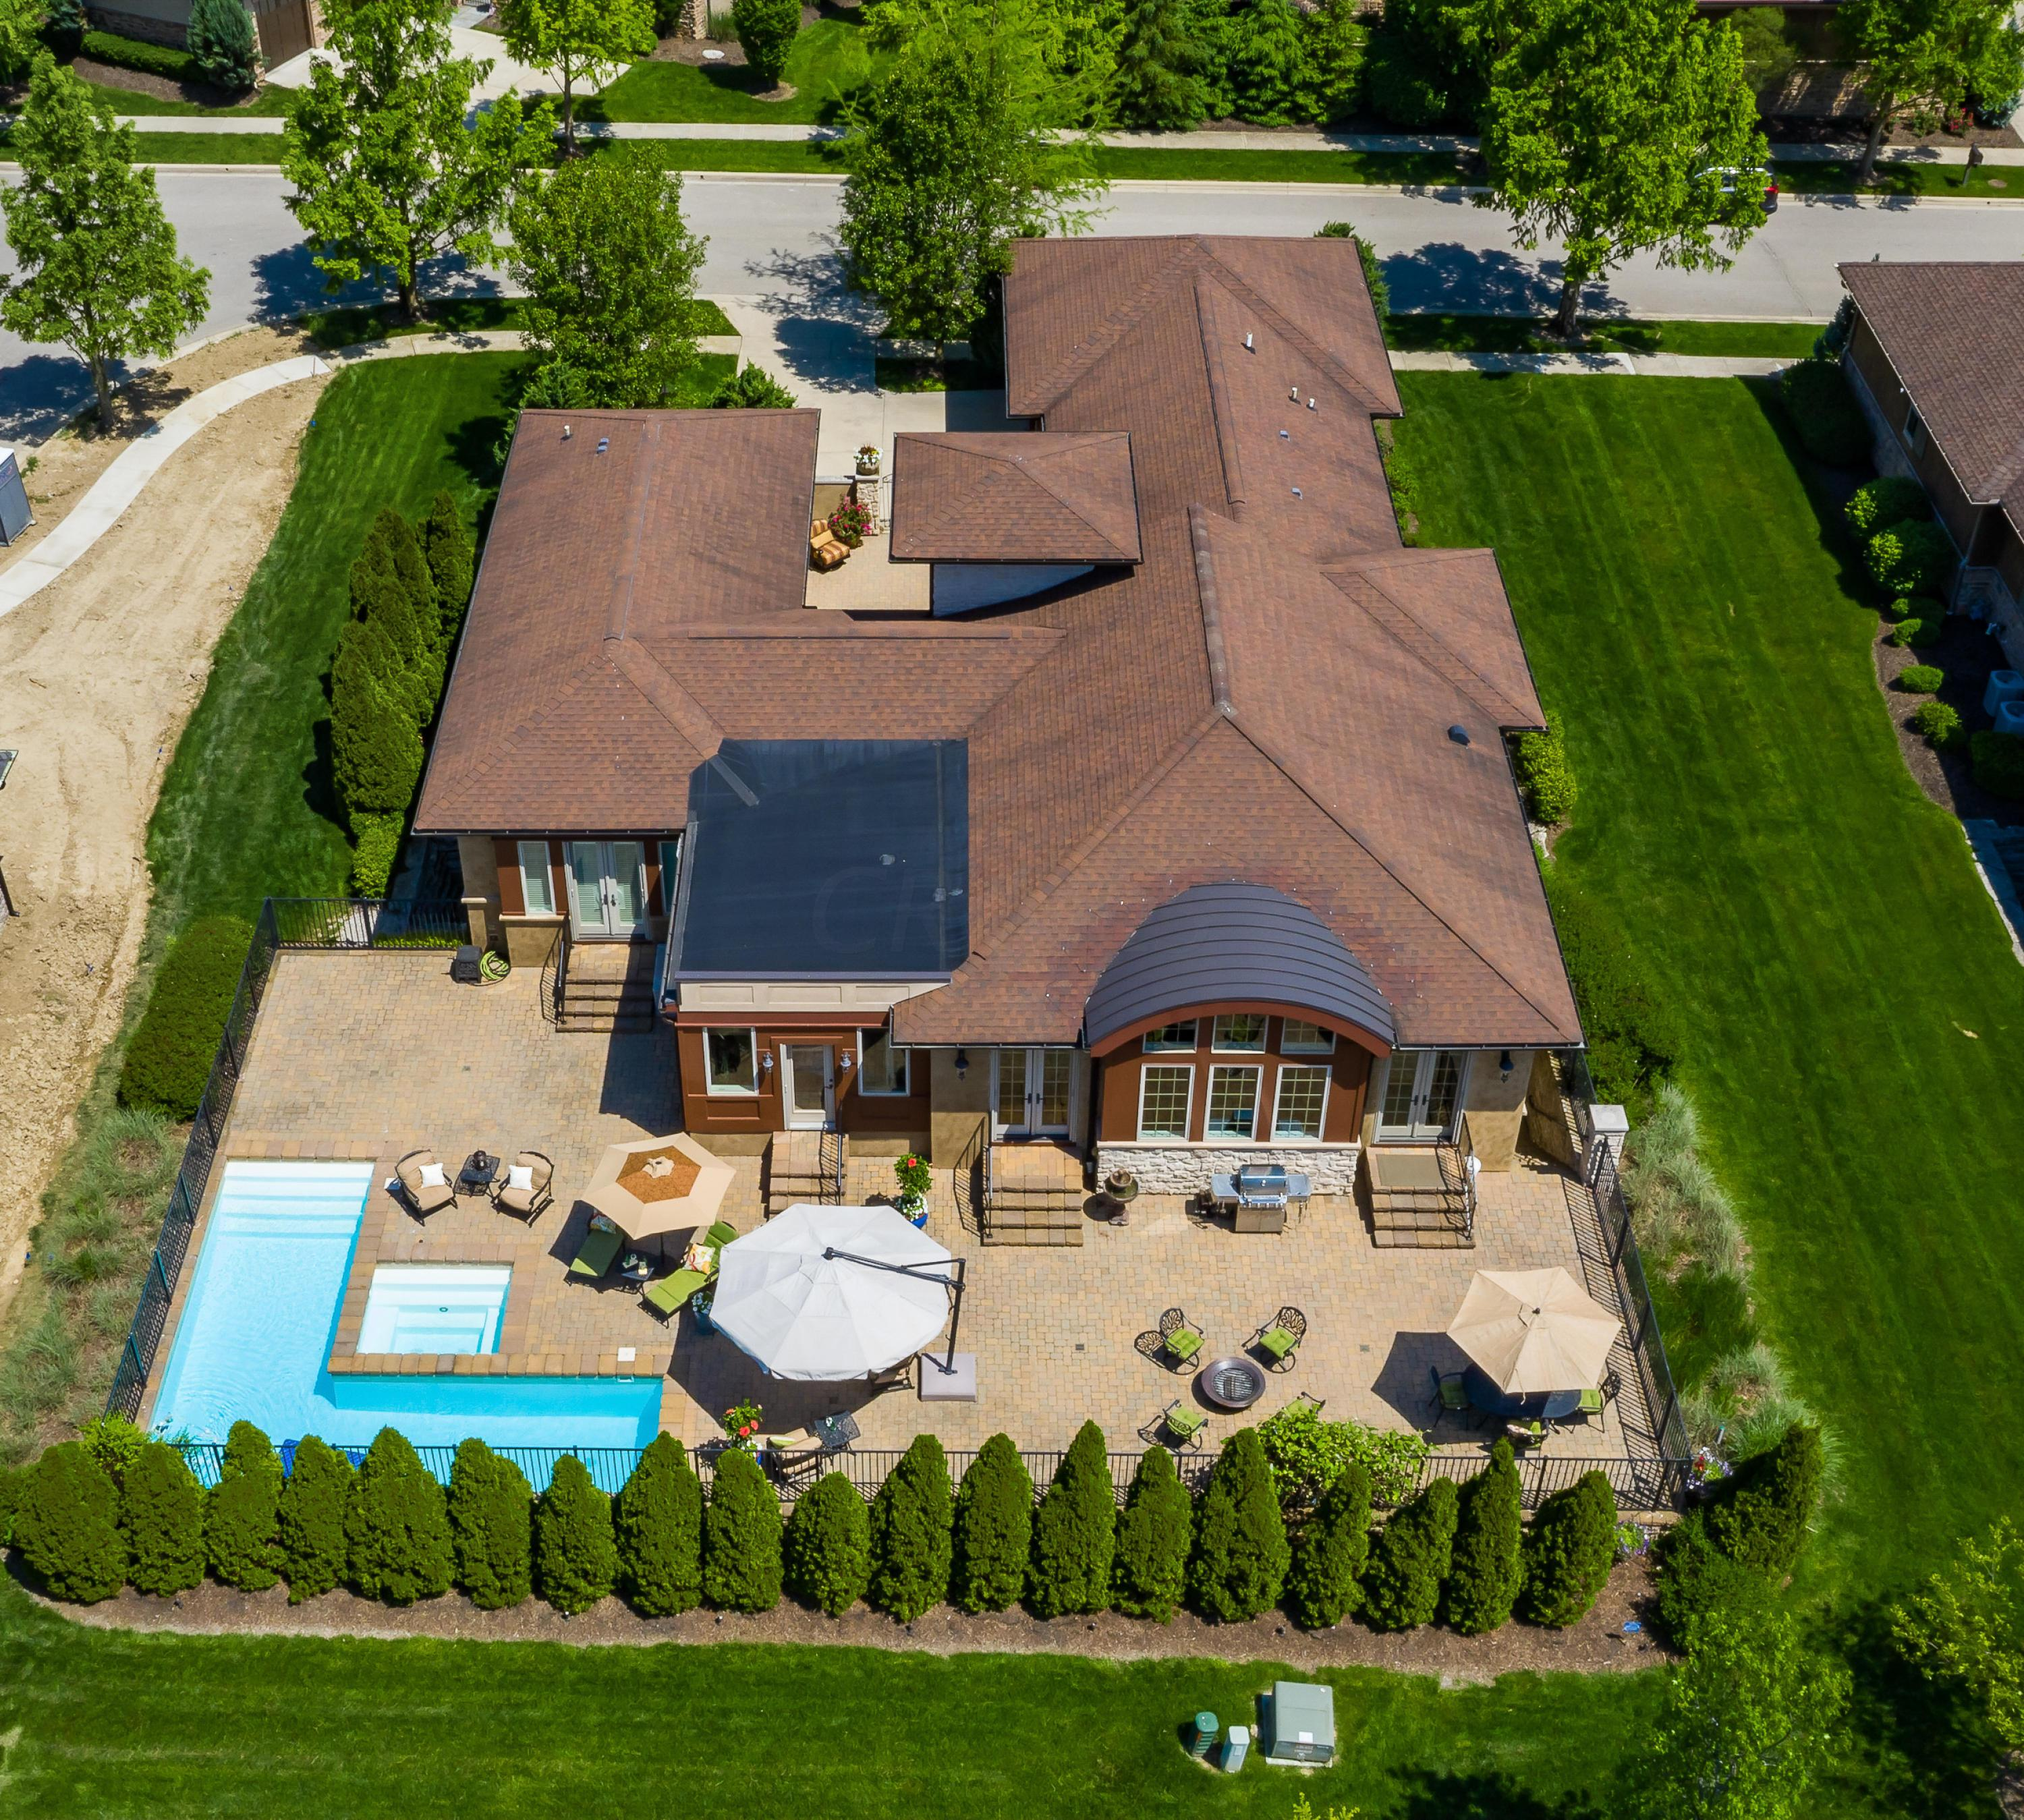 7027 Calabria Place, Dublin, Ohio 43016, 4 Bedrooms Bedrooms, ,4 BathroomsBathrooms,Residential,For Sale,Calabria,220017680